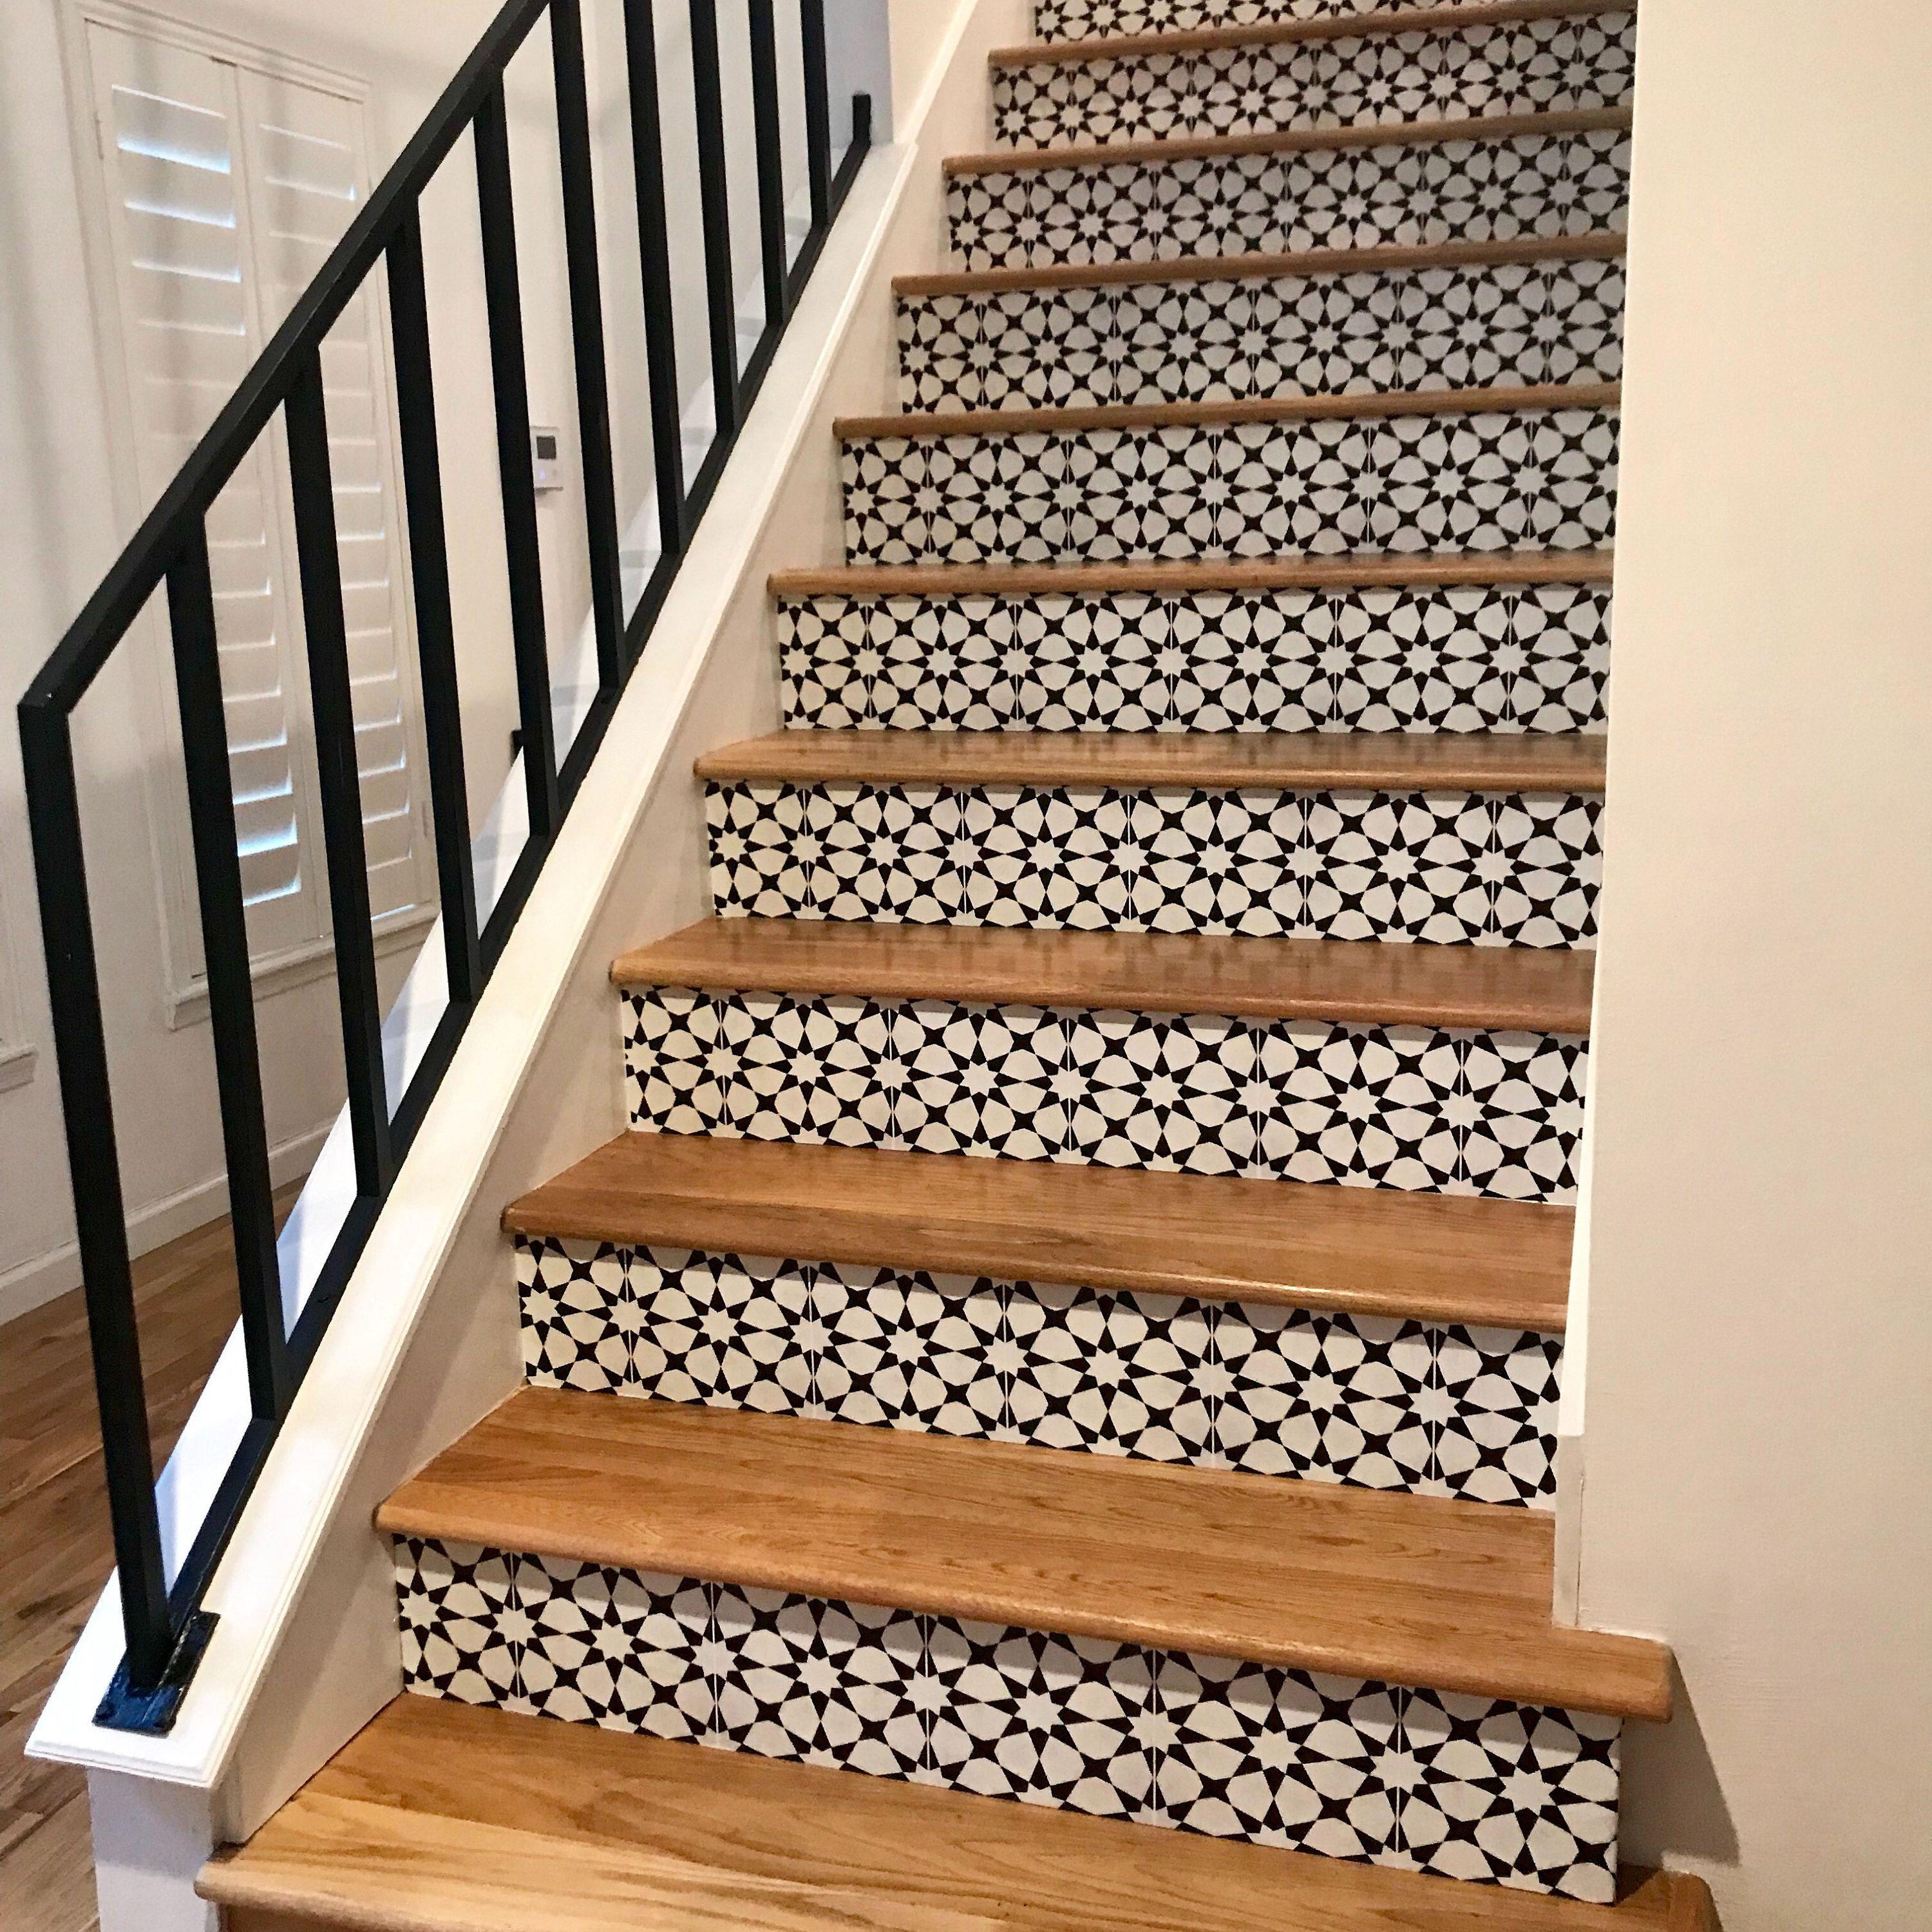 Stair Riser Stickers Removable Stair Riser Tile Decals